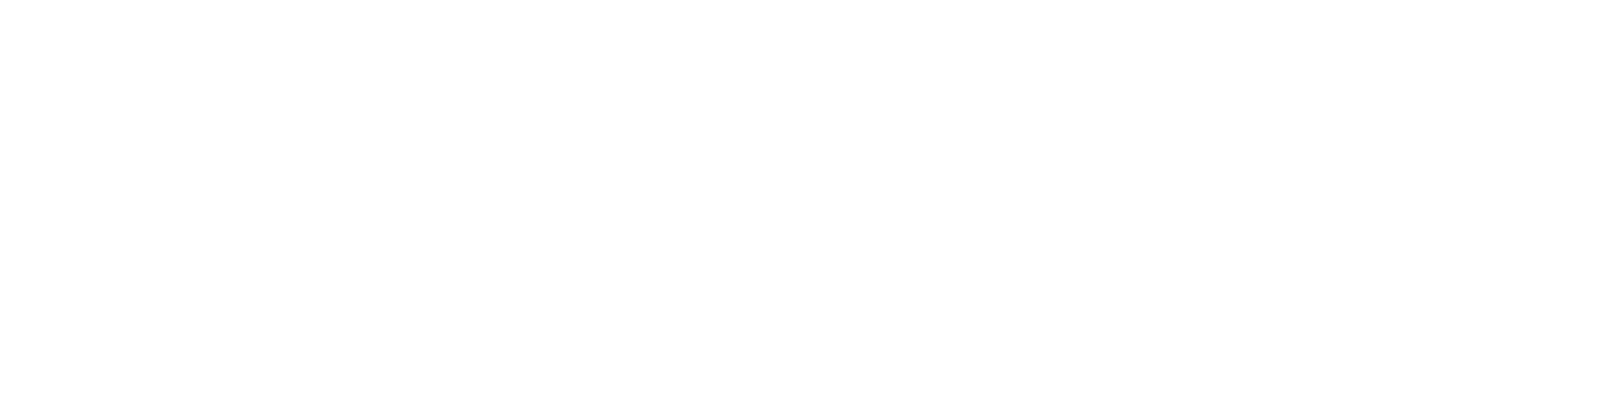 NCFC_BuildBetter(Logo)@2x.png